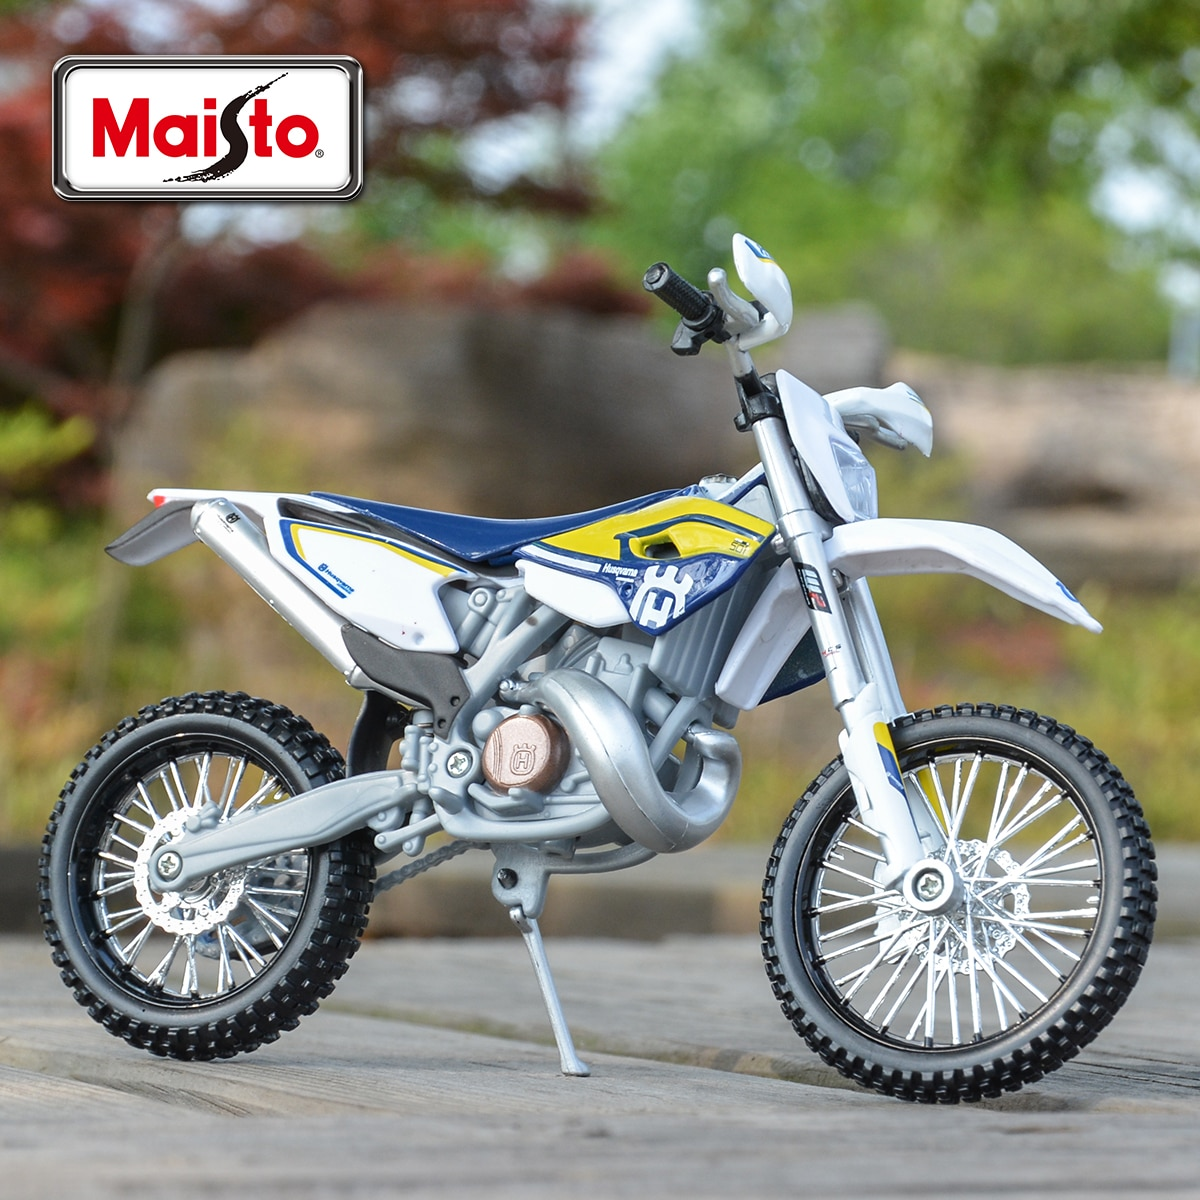 Maisto 1:12 Husqvarna FE 501 Die Cast Vehicles Collectible Hobbies Motorcycle Model Toys